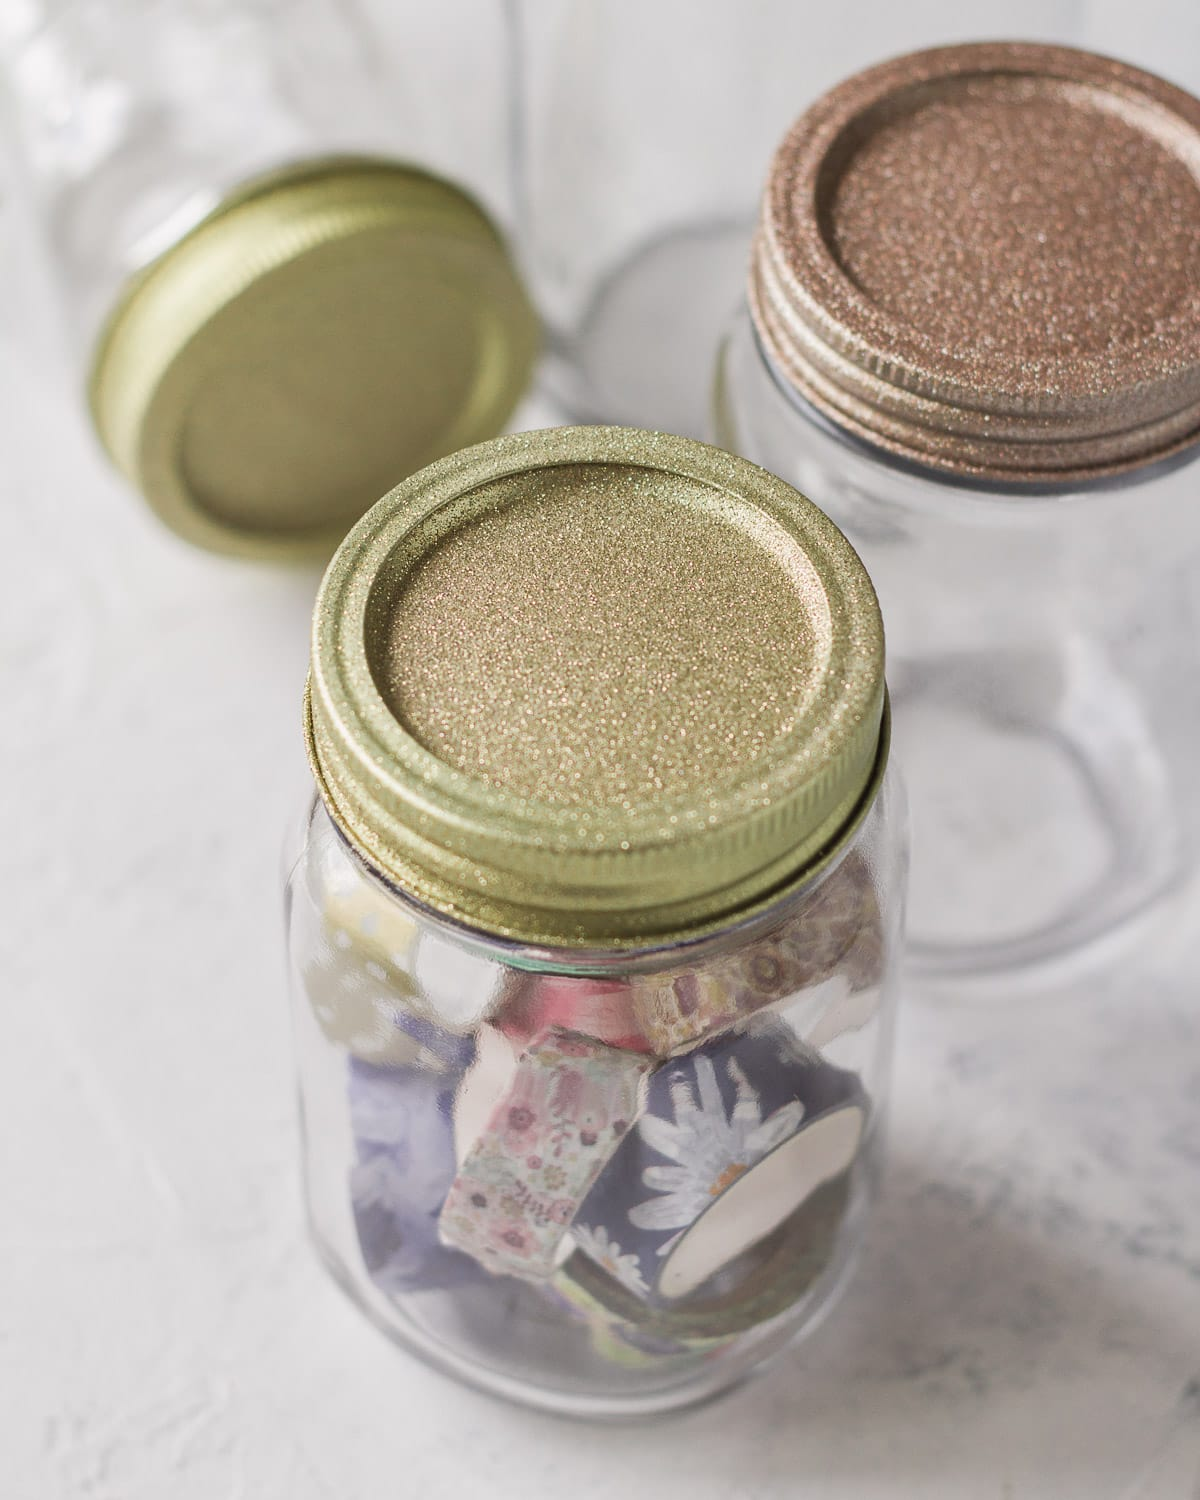 Mason jars topped with glittery lids in gold and rose gold.